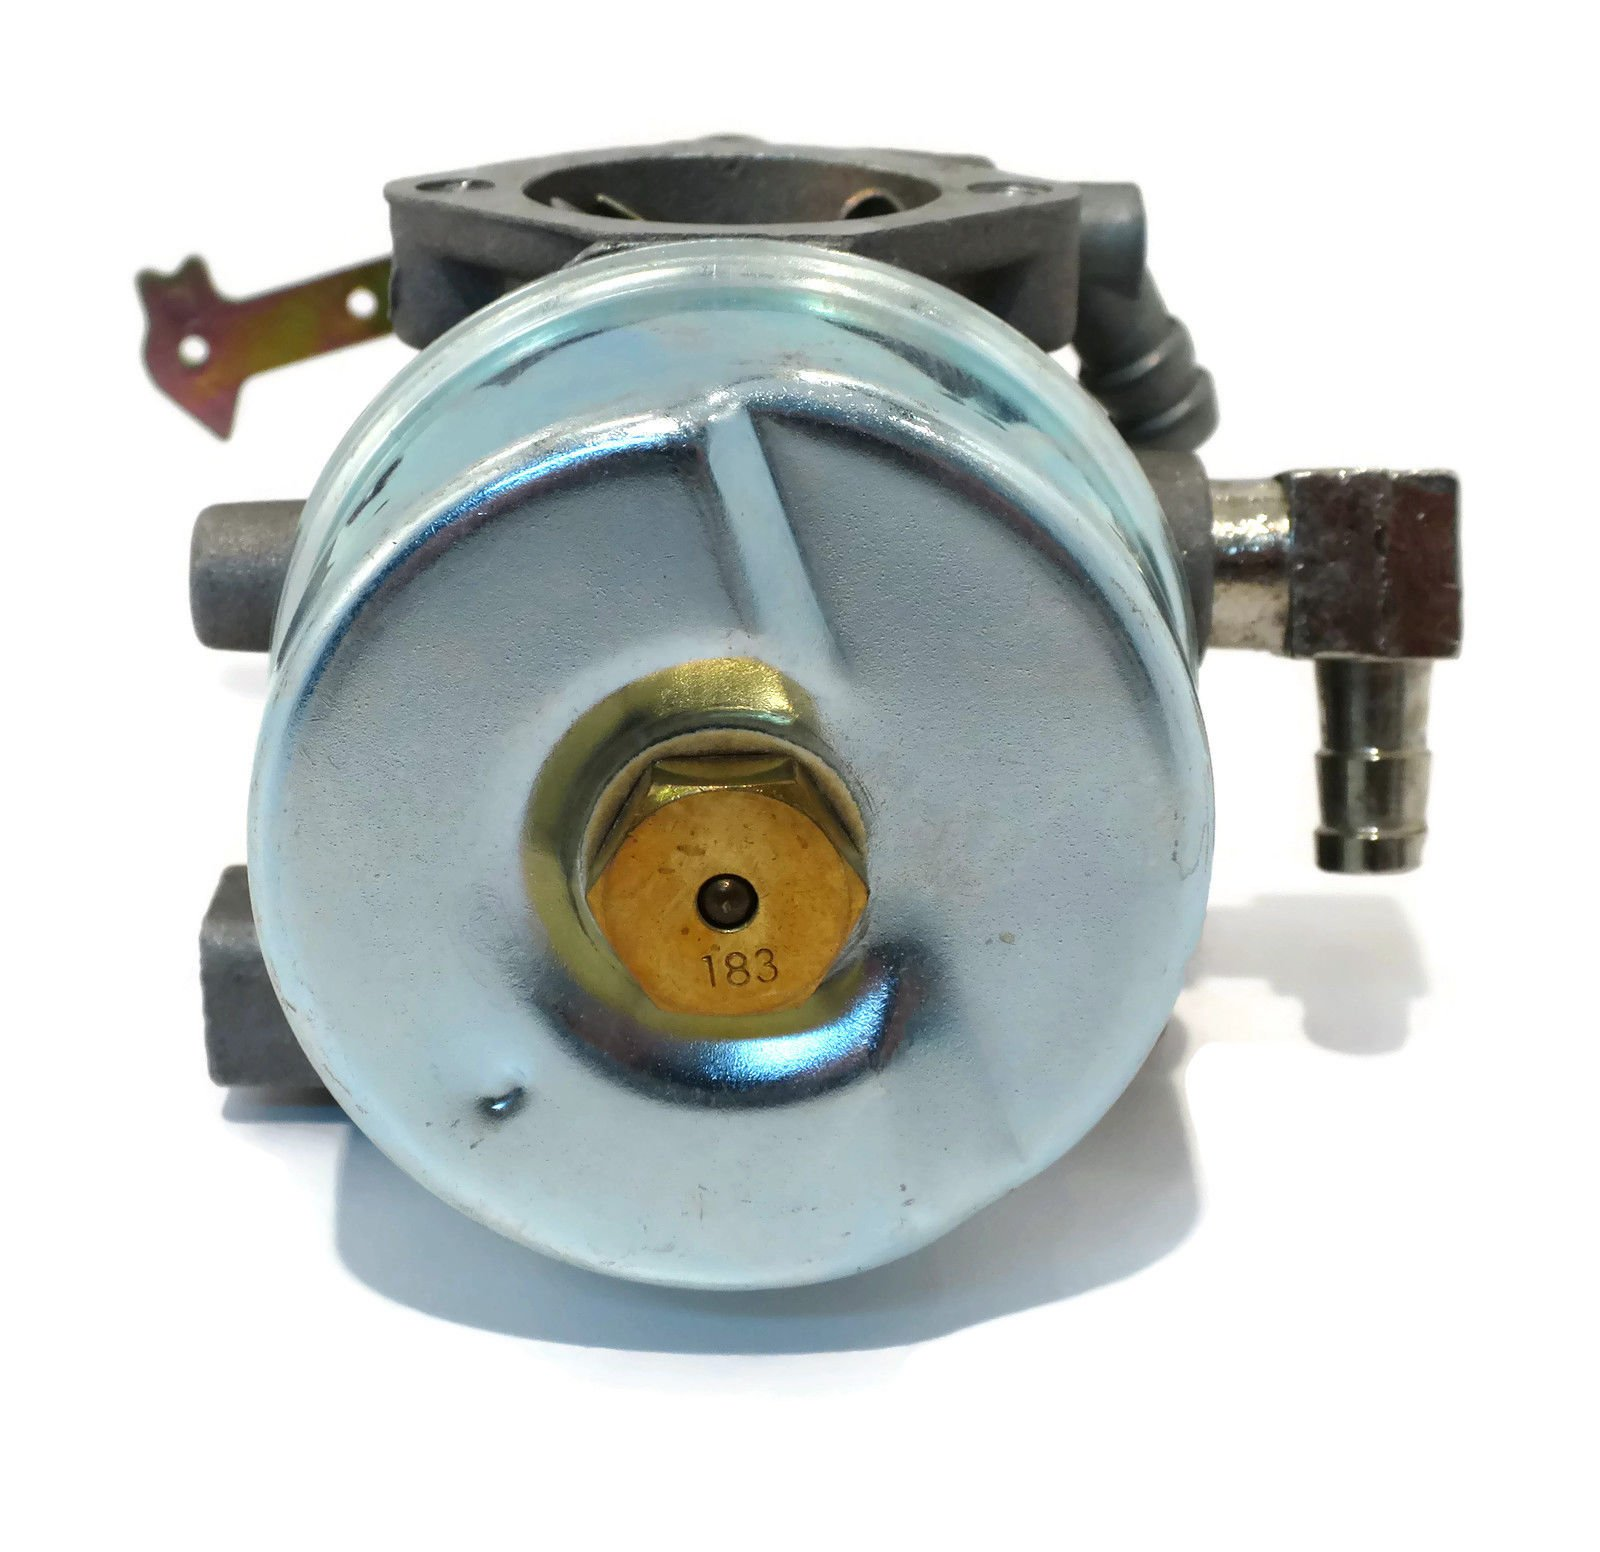 The ROP Shop Carburetor Carb for Tecumseh 640112 Stens 520-954, 056-318 HM80 HM90 HM100 Motor by The ROP Shop (Image #7)